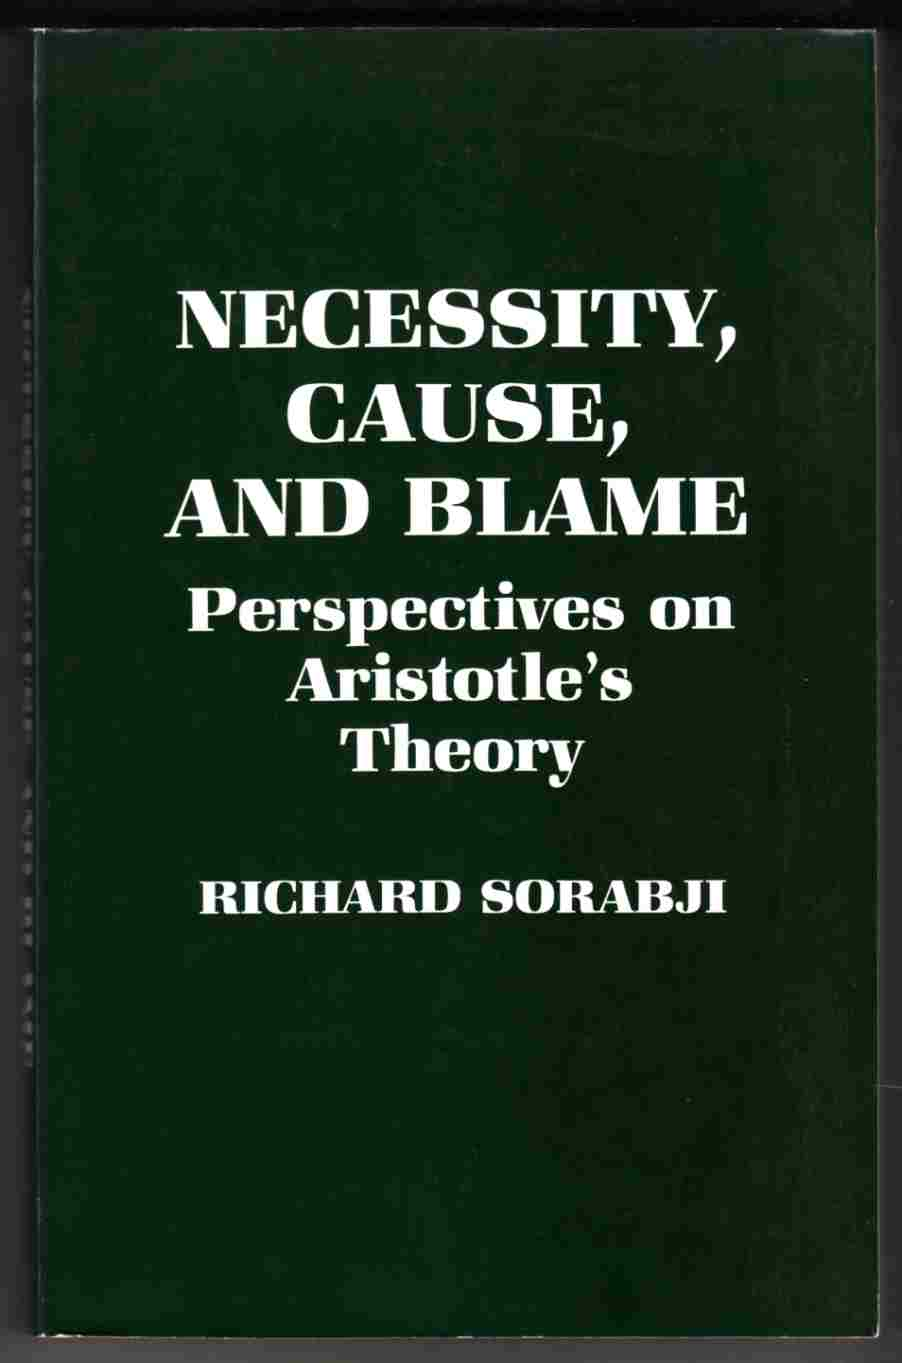 Image for Necessity, Cause, and Blame Perspectives on Aristotle's Theory